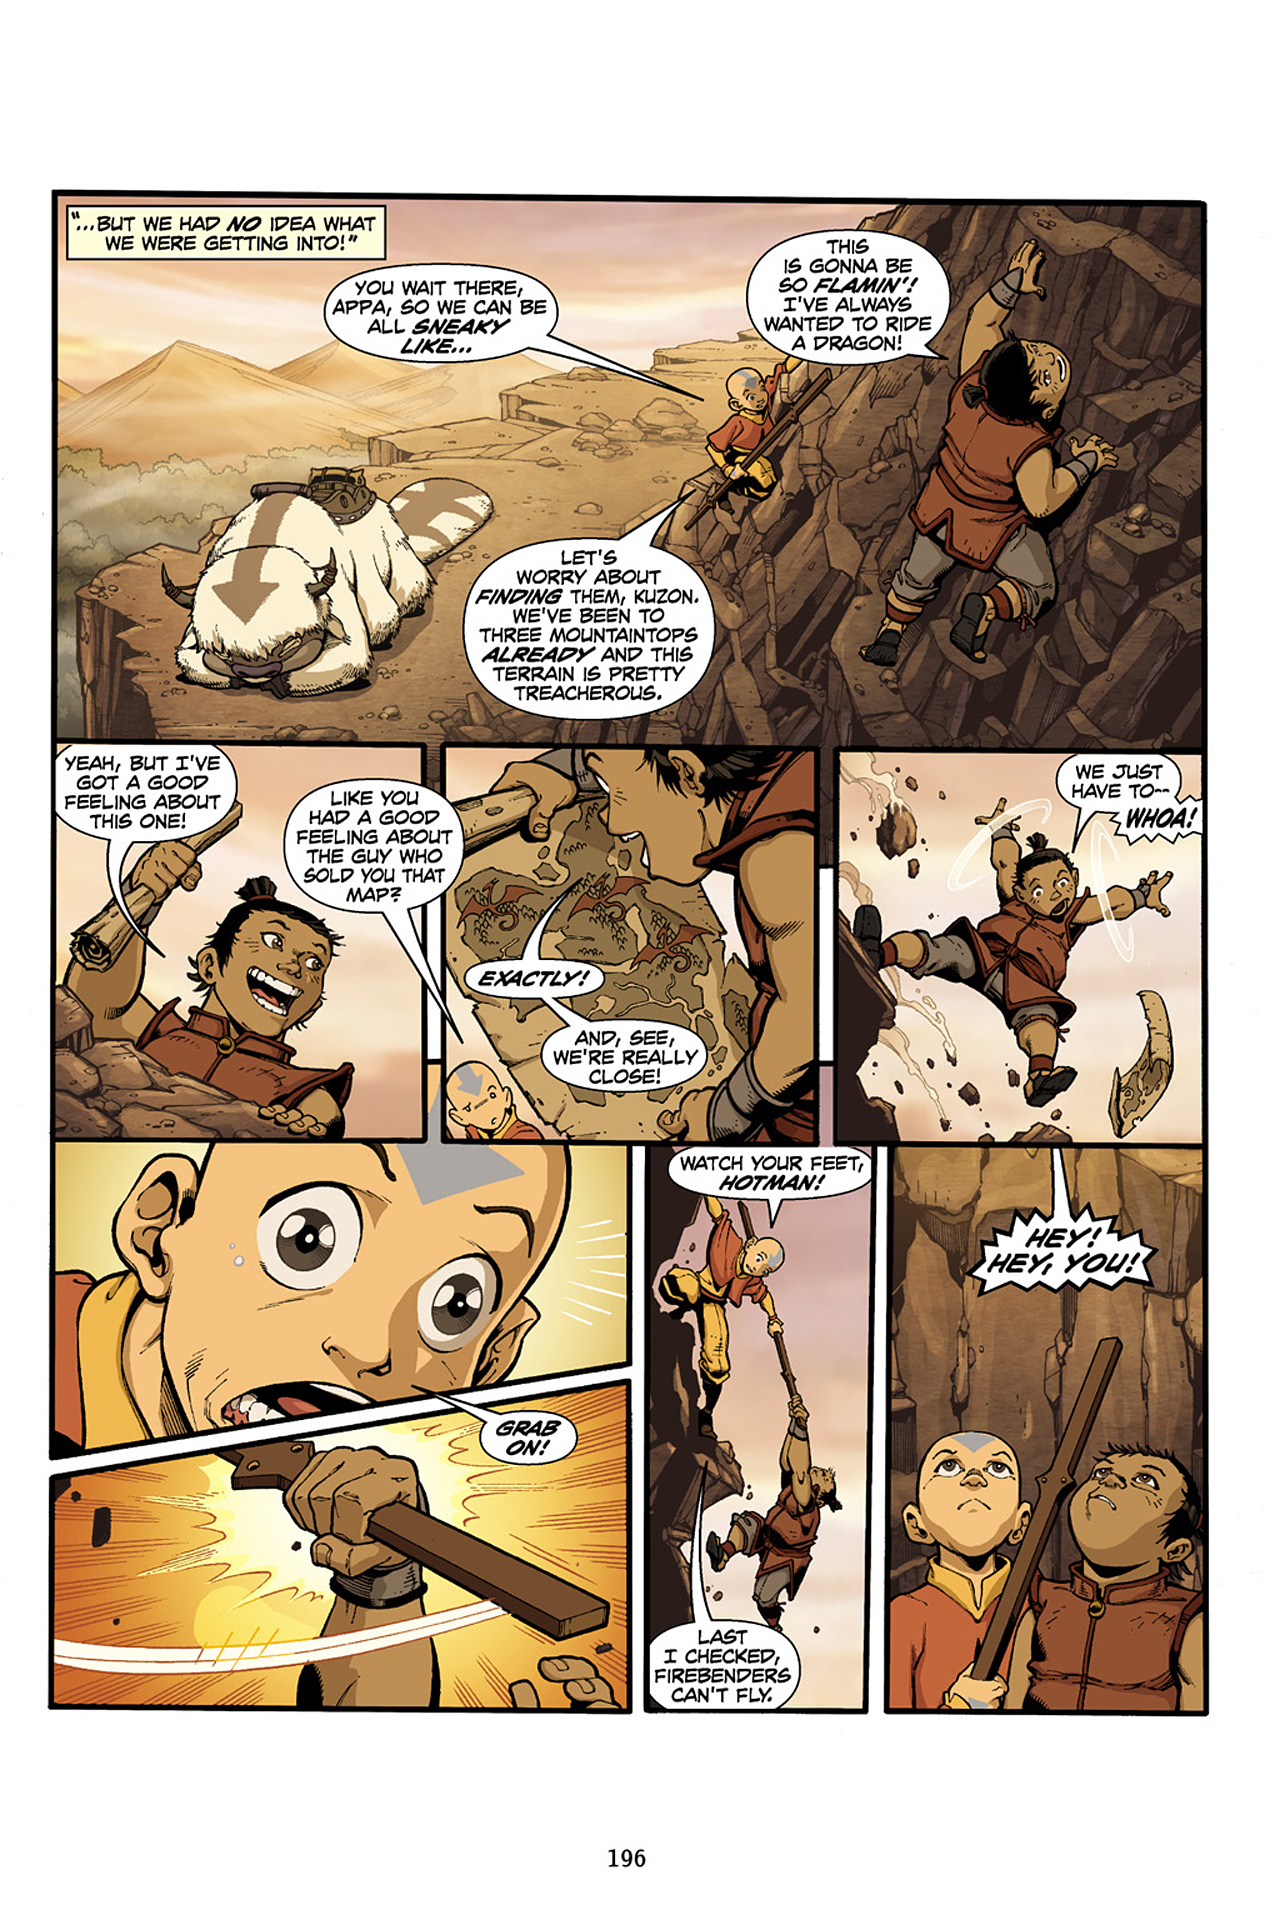 Nickelodeon Avatar: The Last Airbender - The Lost Adventures chap full pic 197